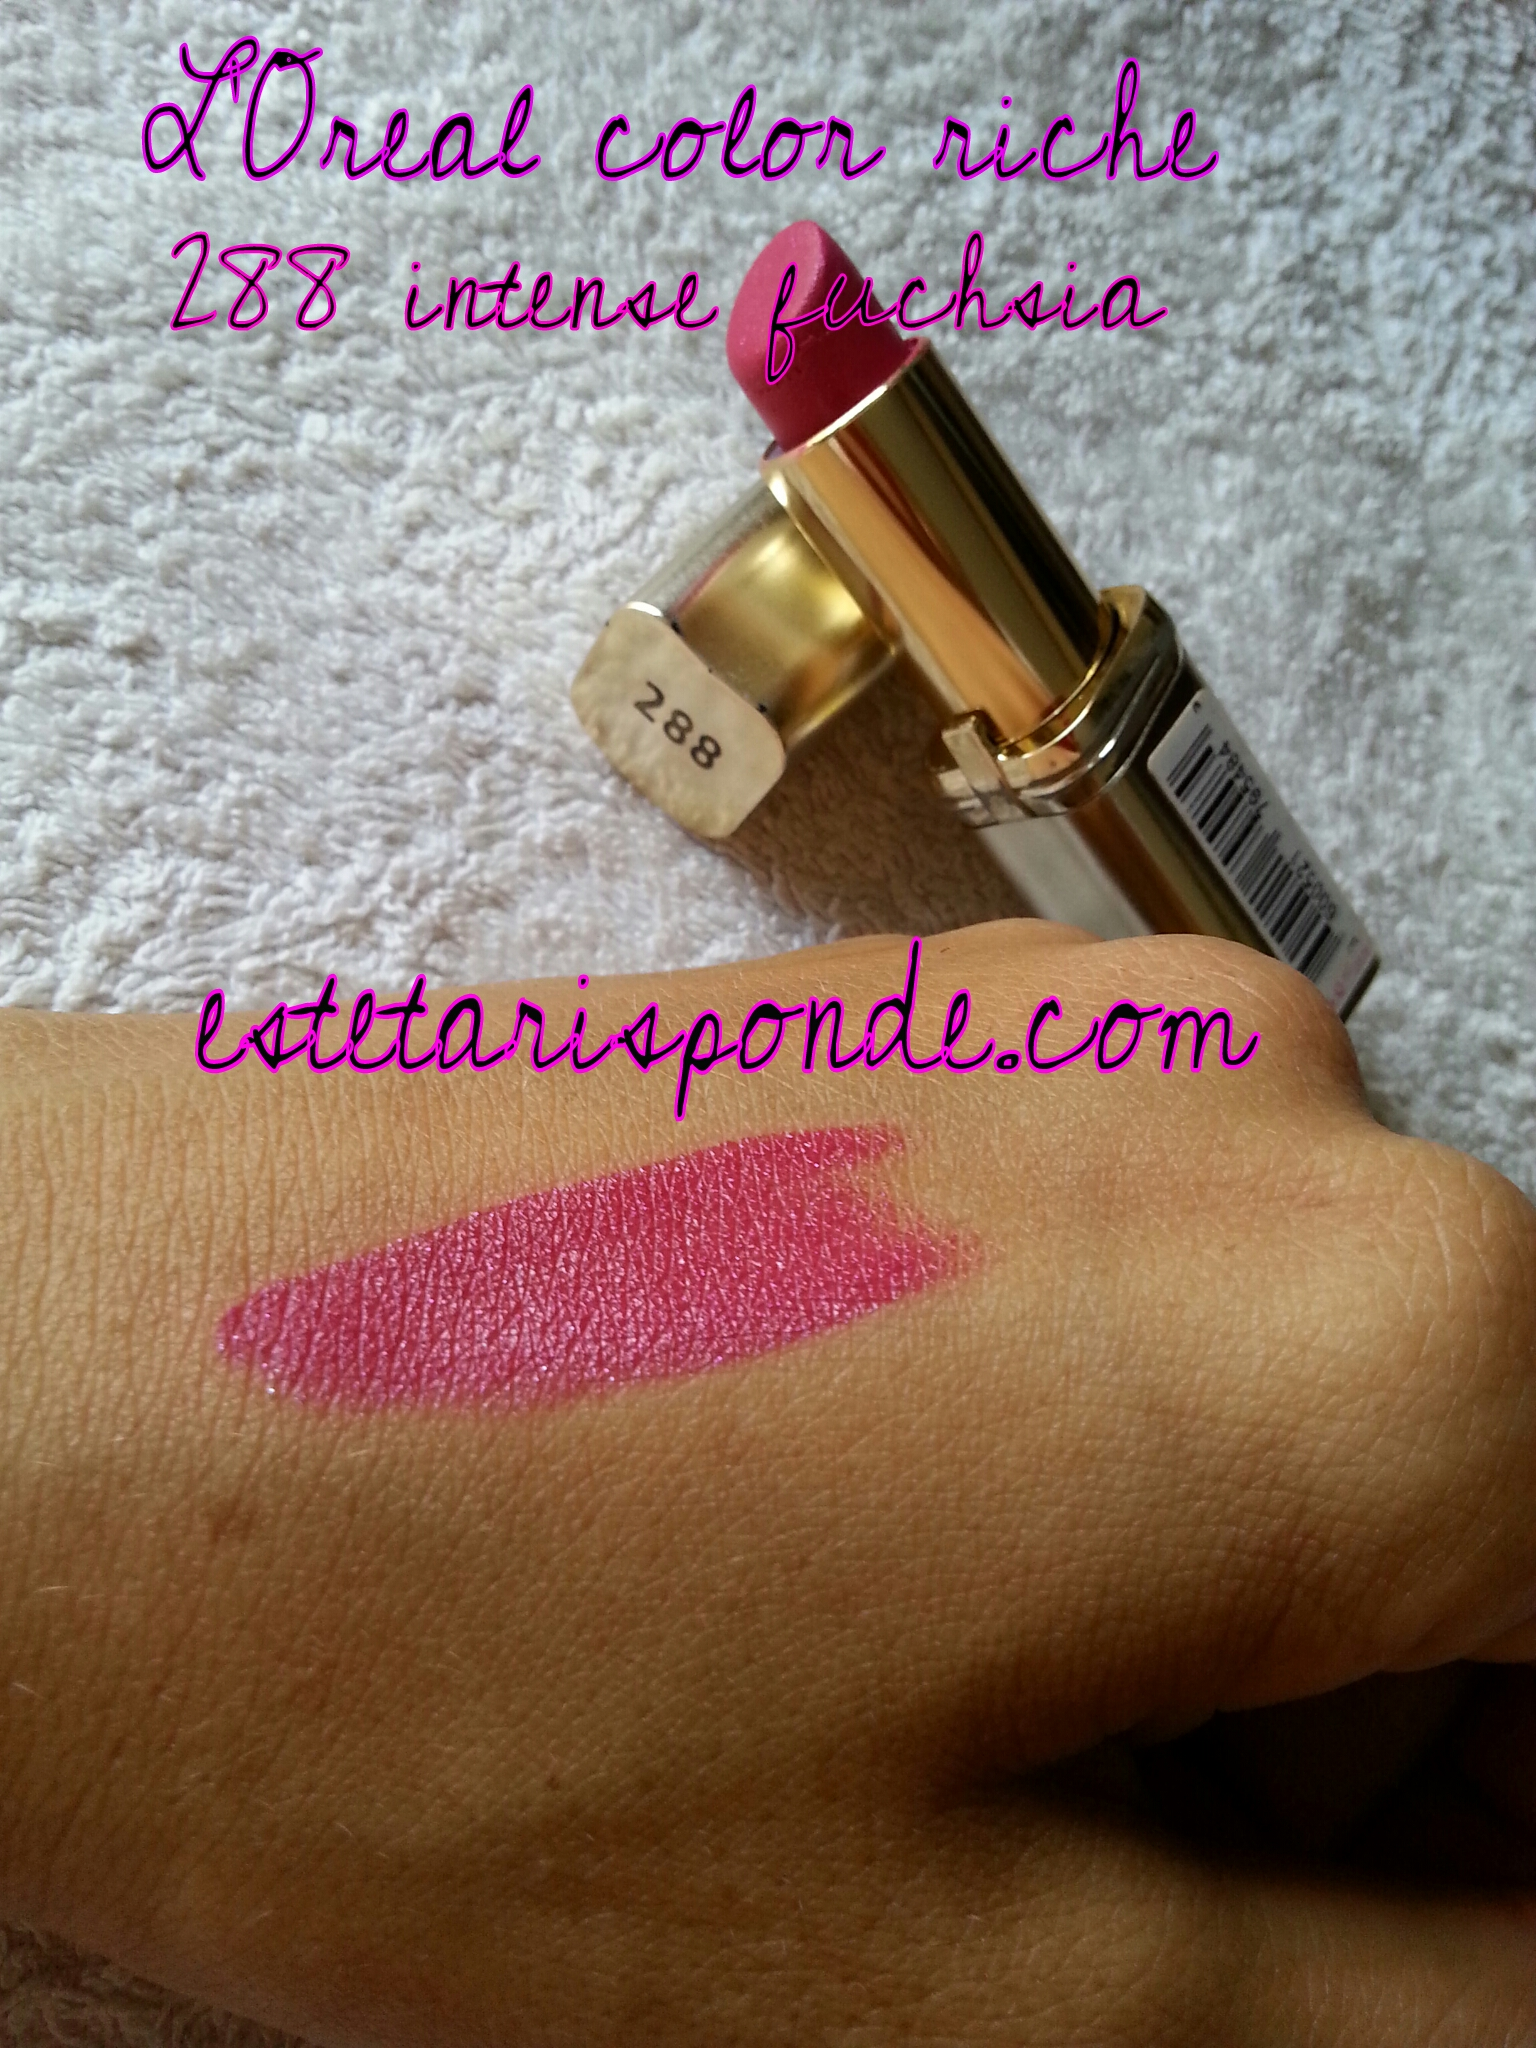 L'Oreal Color Riche #288 intense fuchsia - swatch